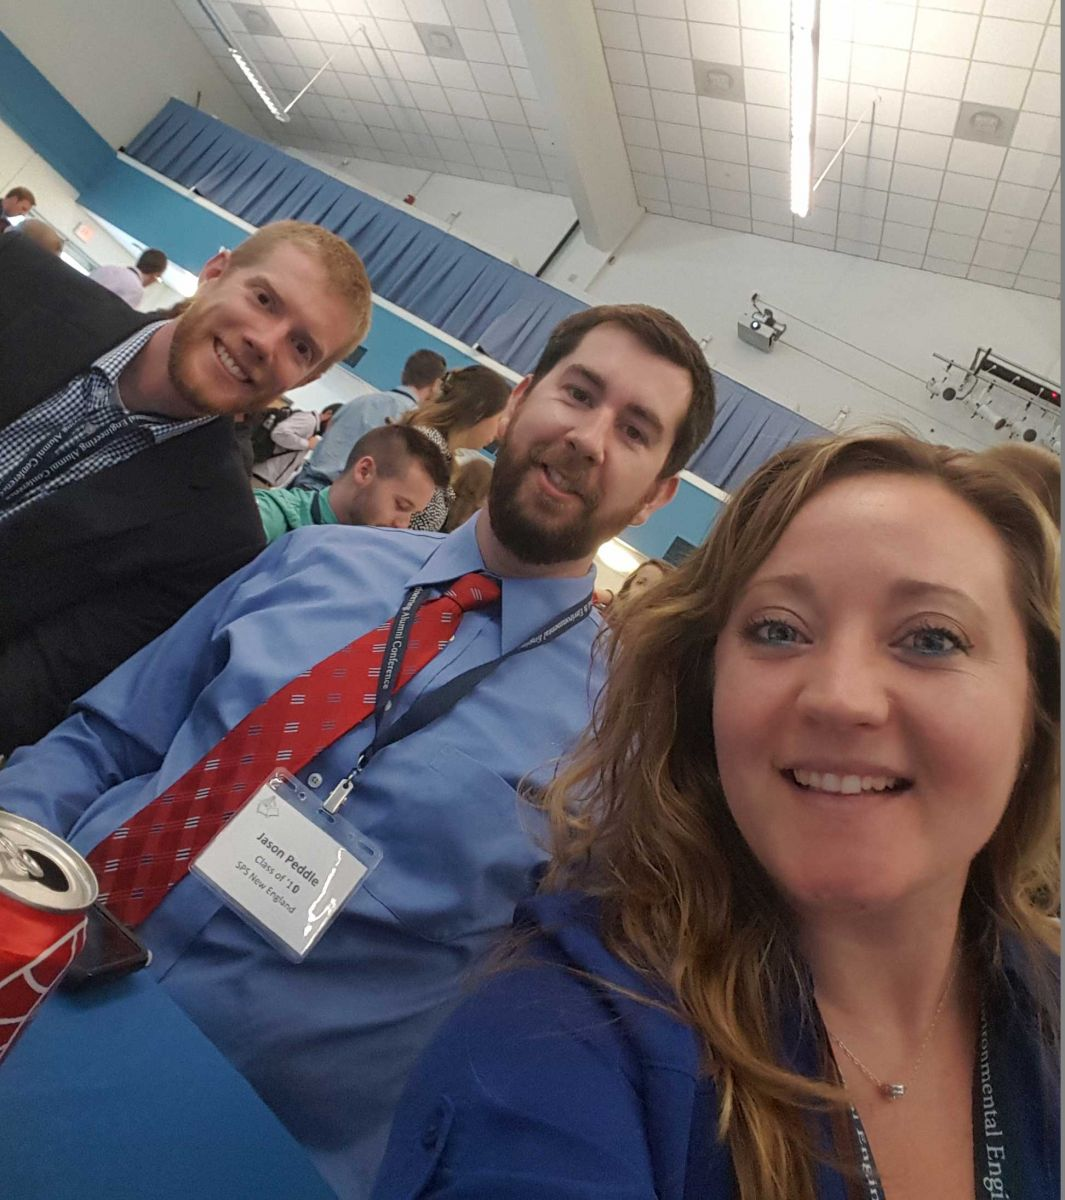 Noah Chinburg, NHDOT; Jason Peddle, SPS New England, Inc.; Katie Andruchuk, A&M